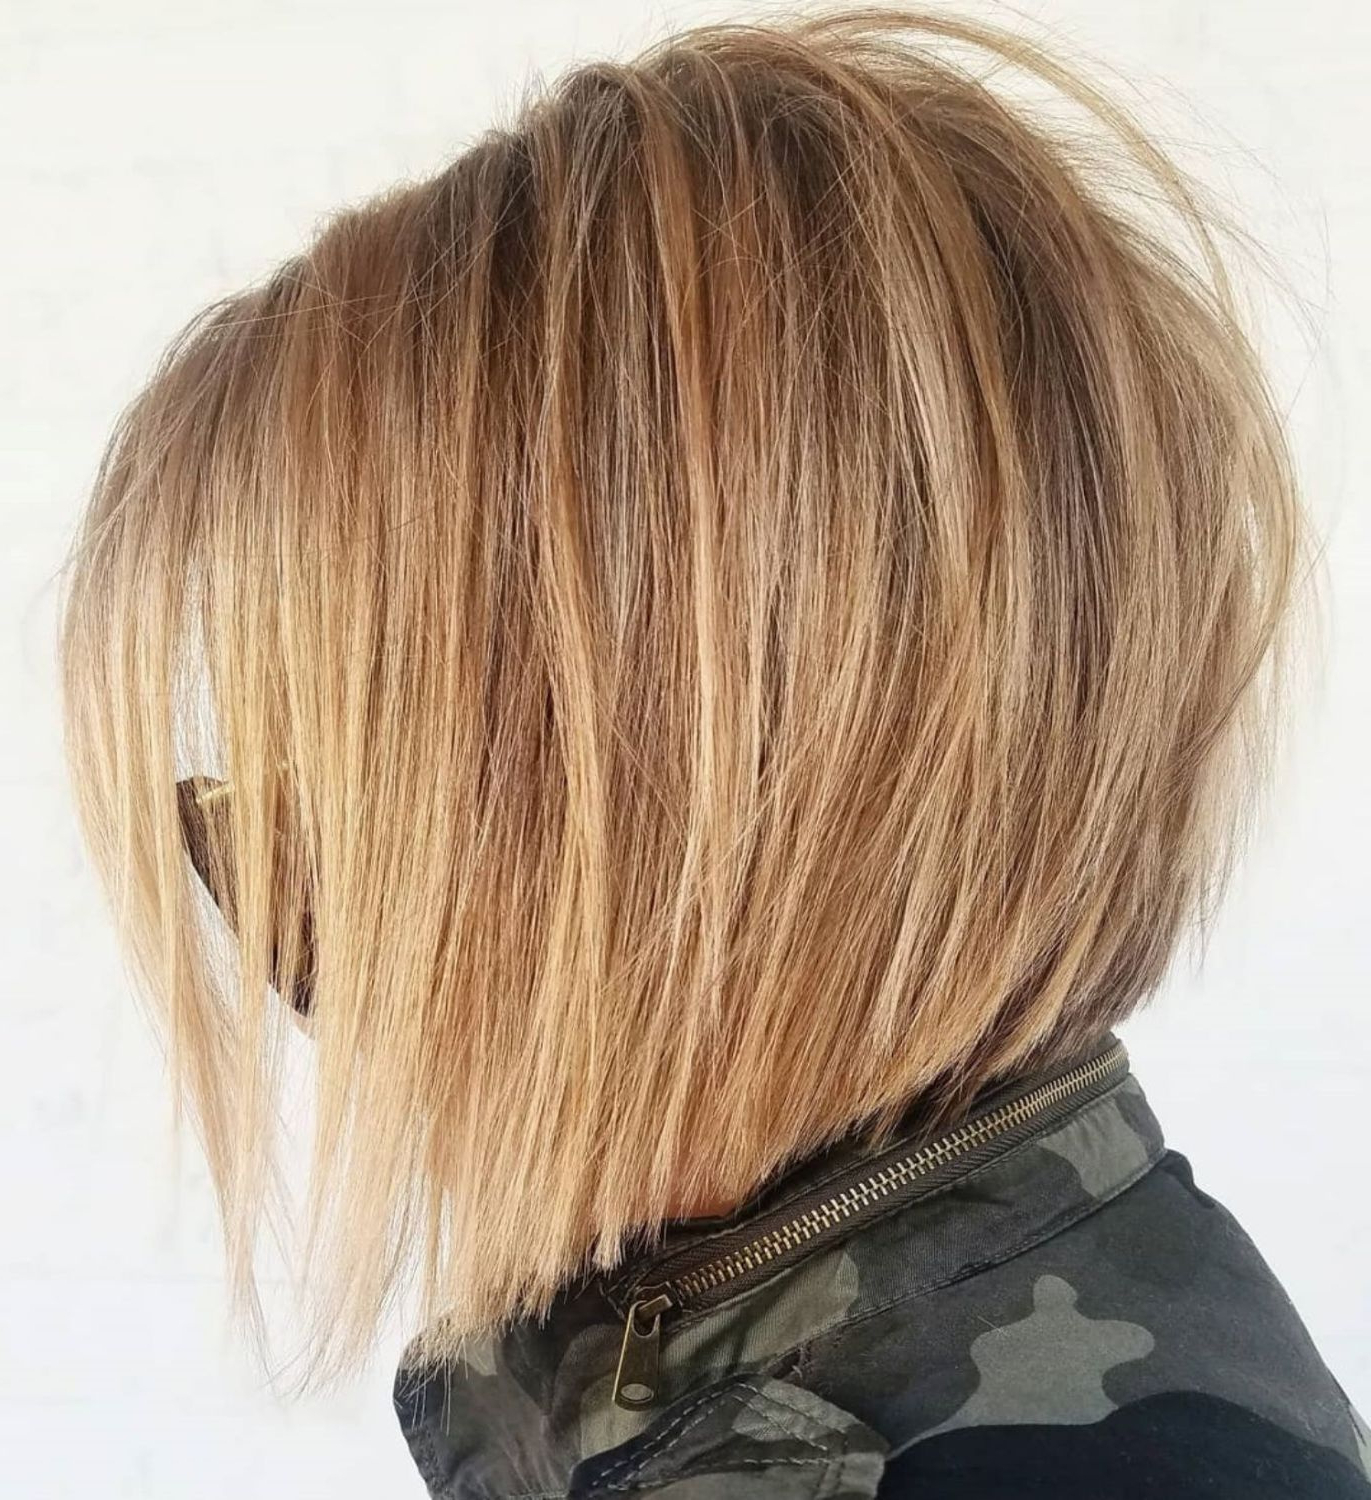 Hairstyles : Razored Blonde Bob Most Creative 60 Layered Bob Pertaining To Trendy Two Layer Razored Blonde Hairstyles (View 14 of 20)